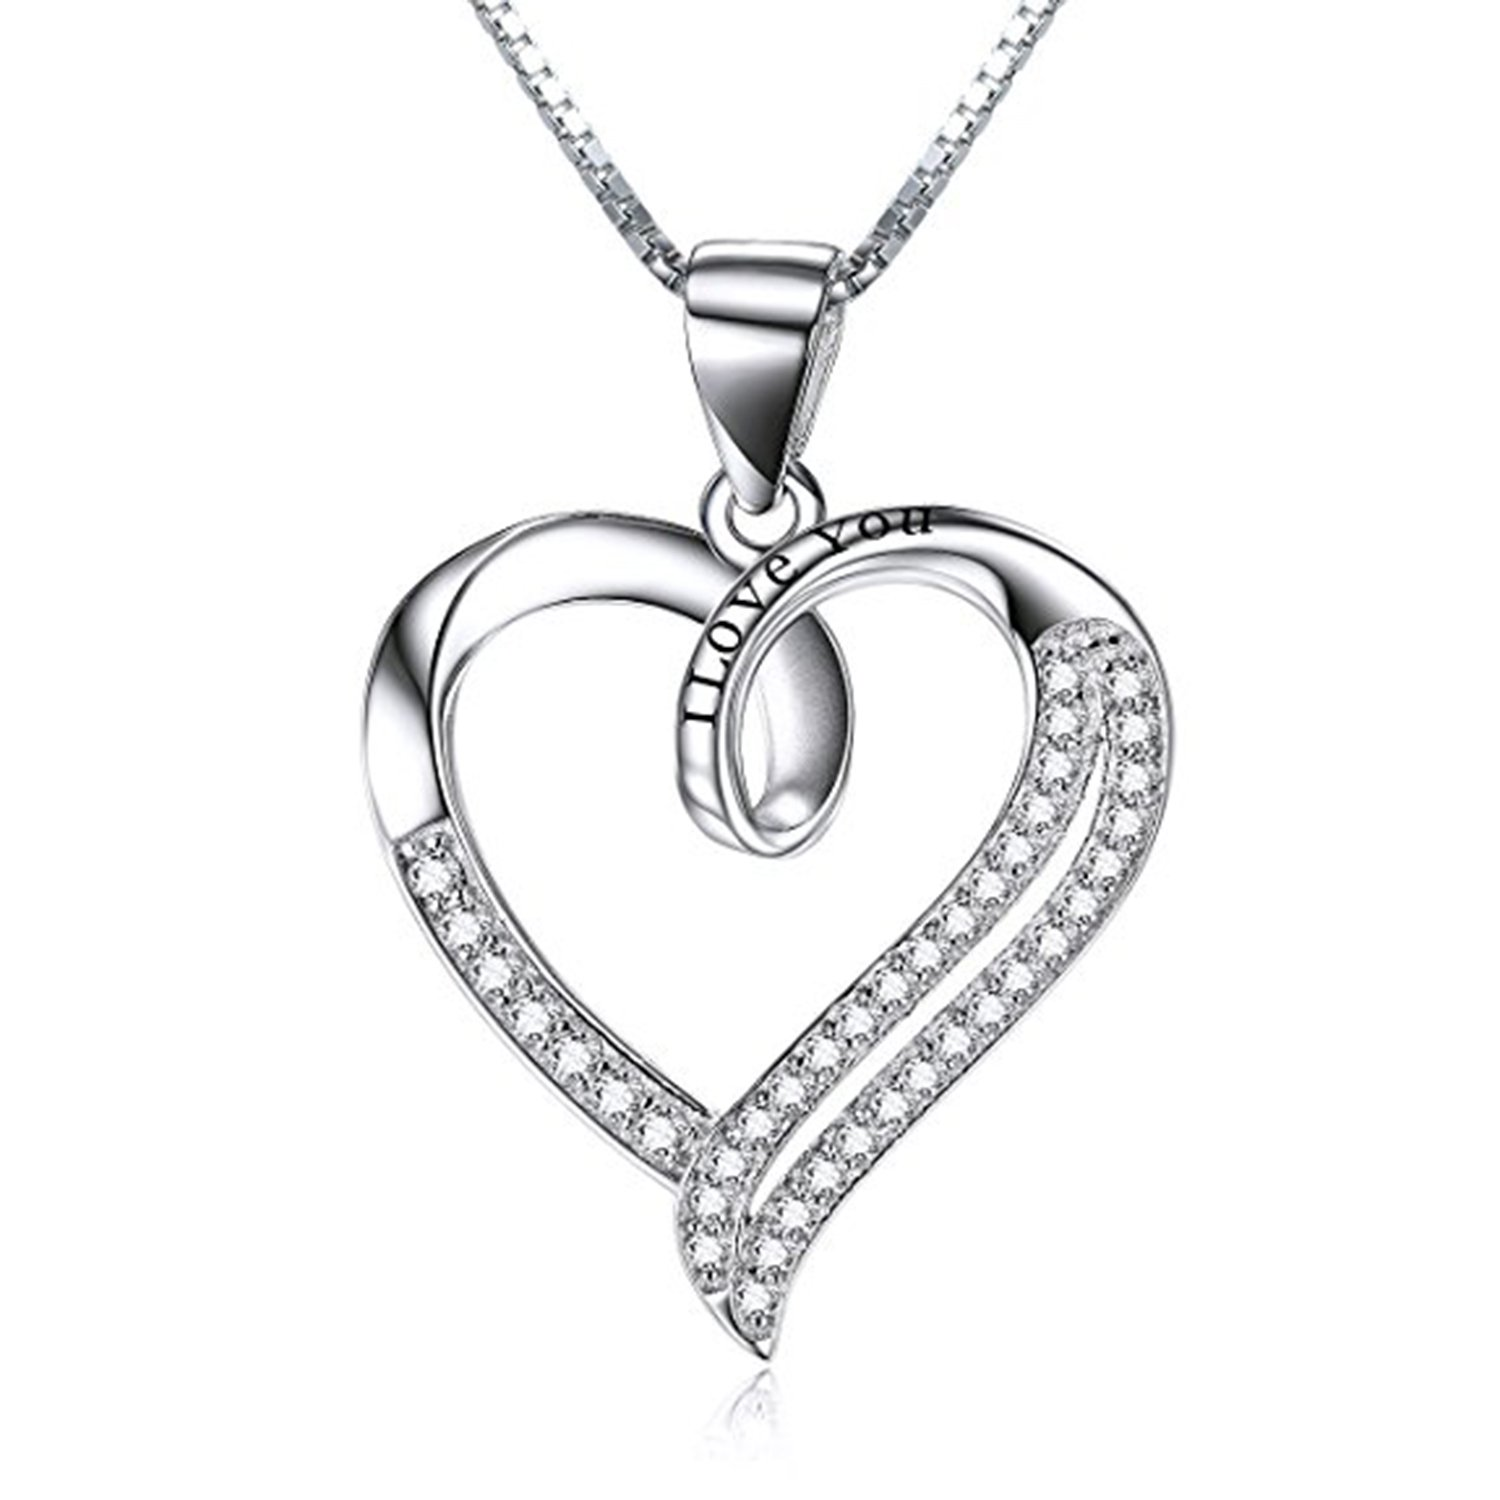 Suhana Jewellery Simulated Diamond Studded Fashion Promise Love Heart Pendant Necklace in 14K White Gold Plated With Box Chain